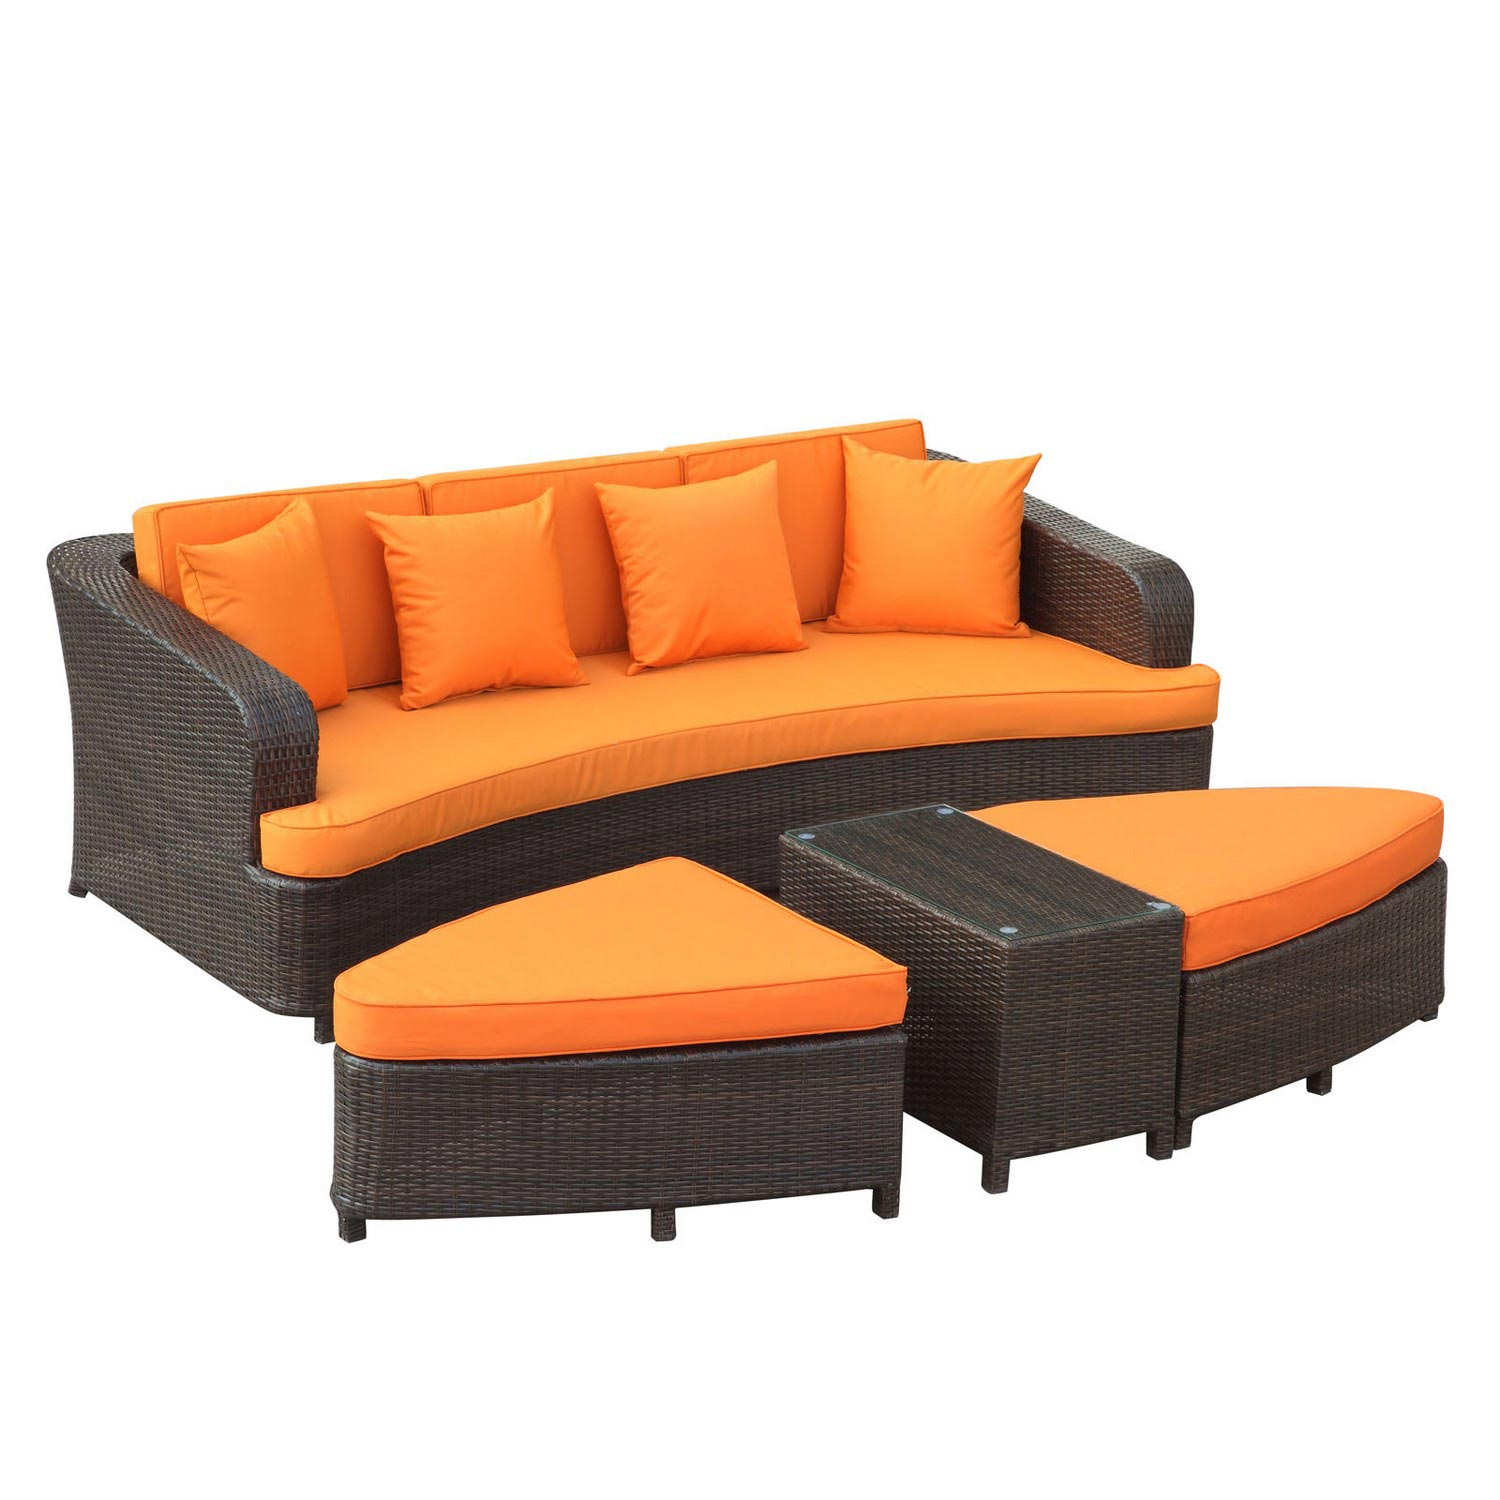 Modway Monterey 4 Piece Outdoor Patio Sofa Set - Brown/Orange